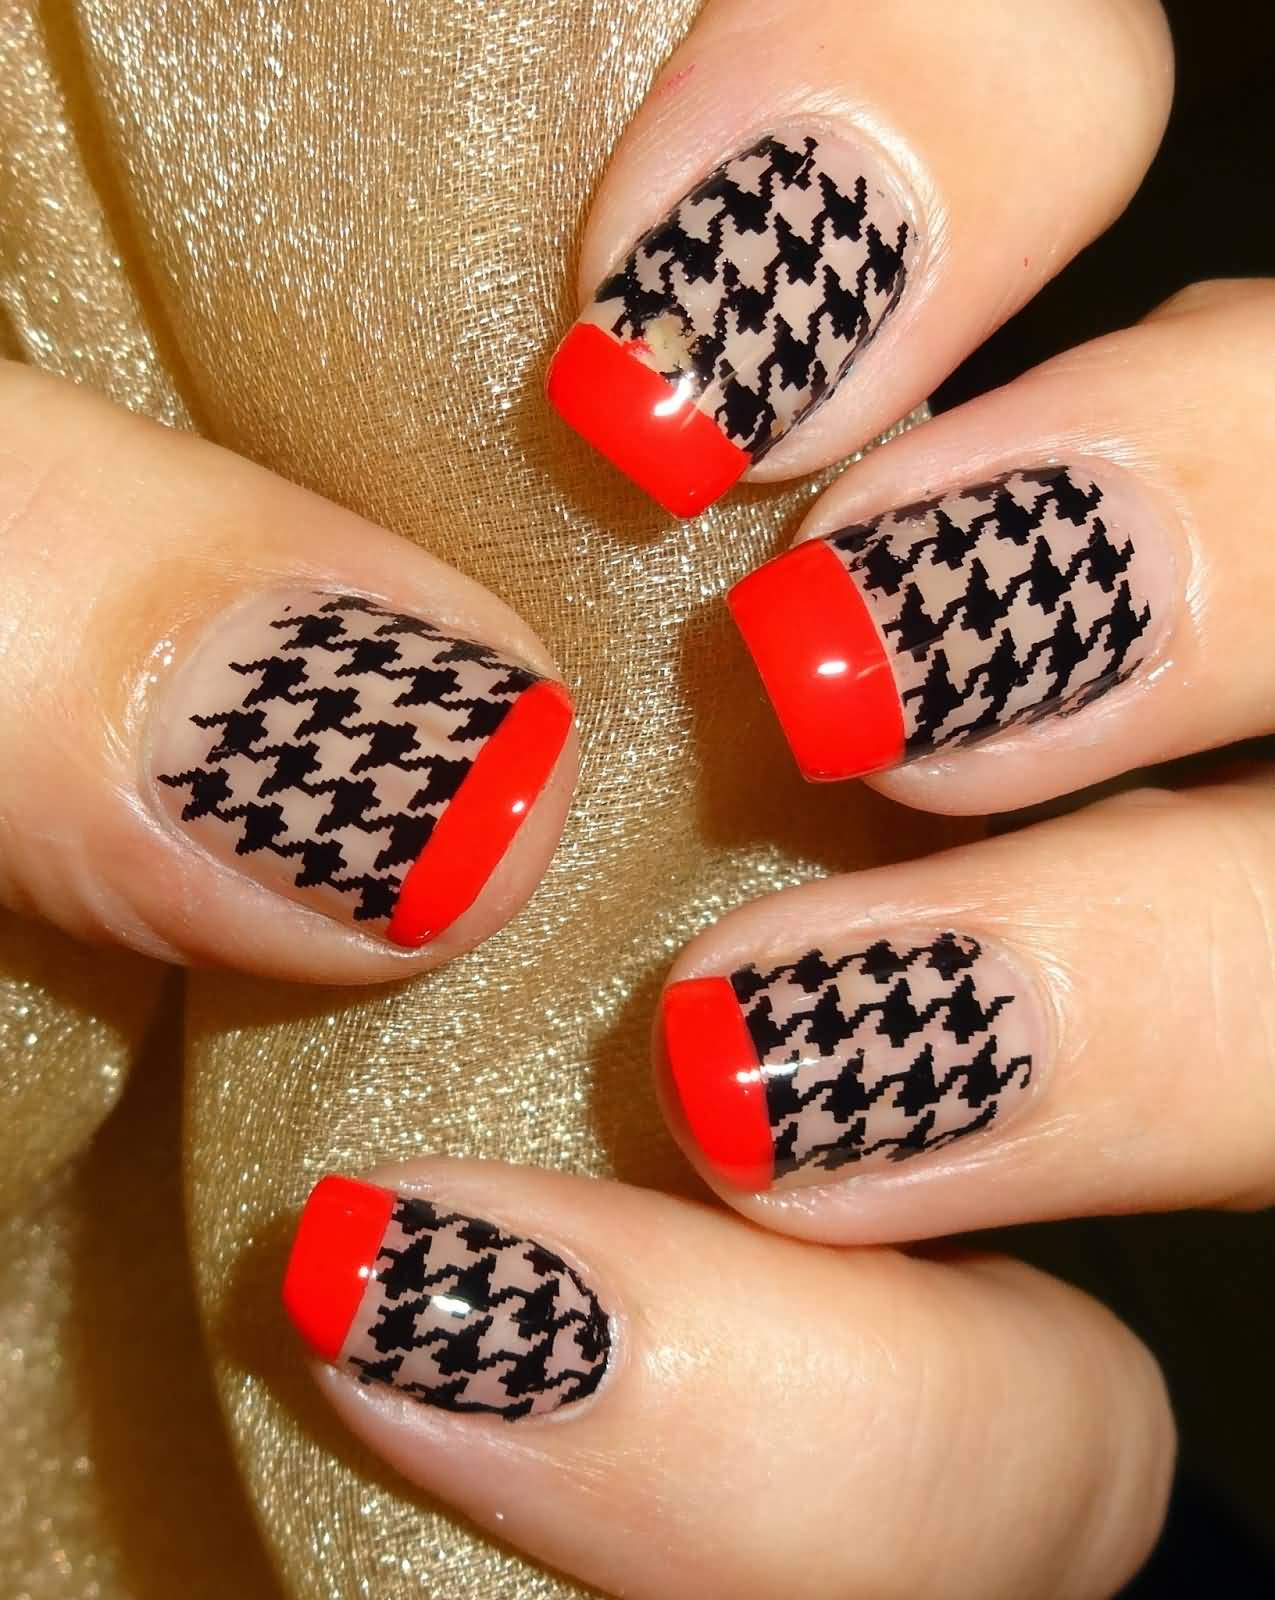 46 latest houndstooth nail art design ideas black houndstooth nail art on nude nails with red tip nail design prinsesfo Images